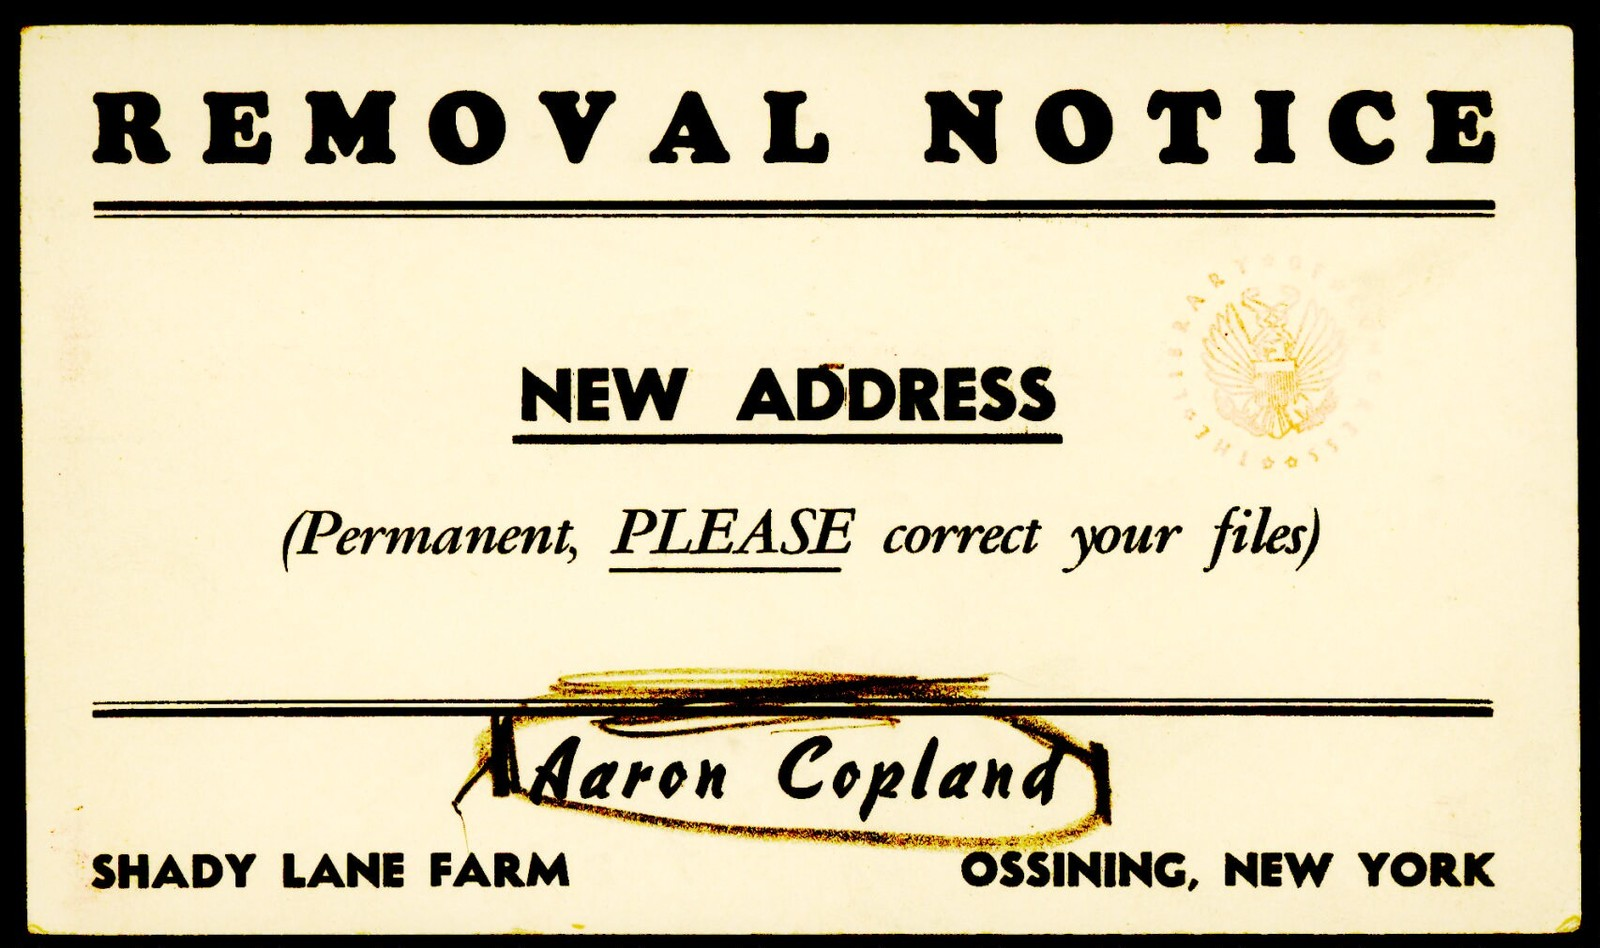 Letter from Aaron Copland to Irving and Verna Fine, November 29, 1952.